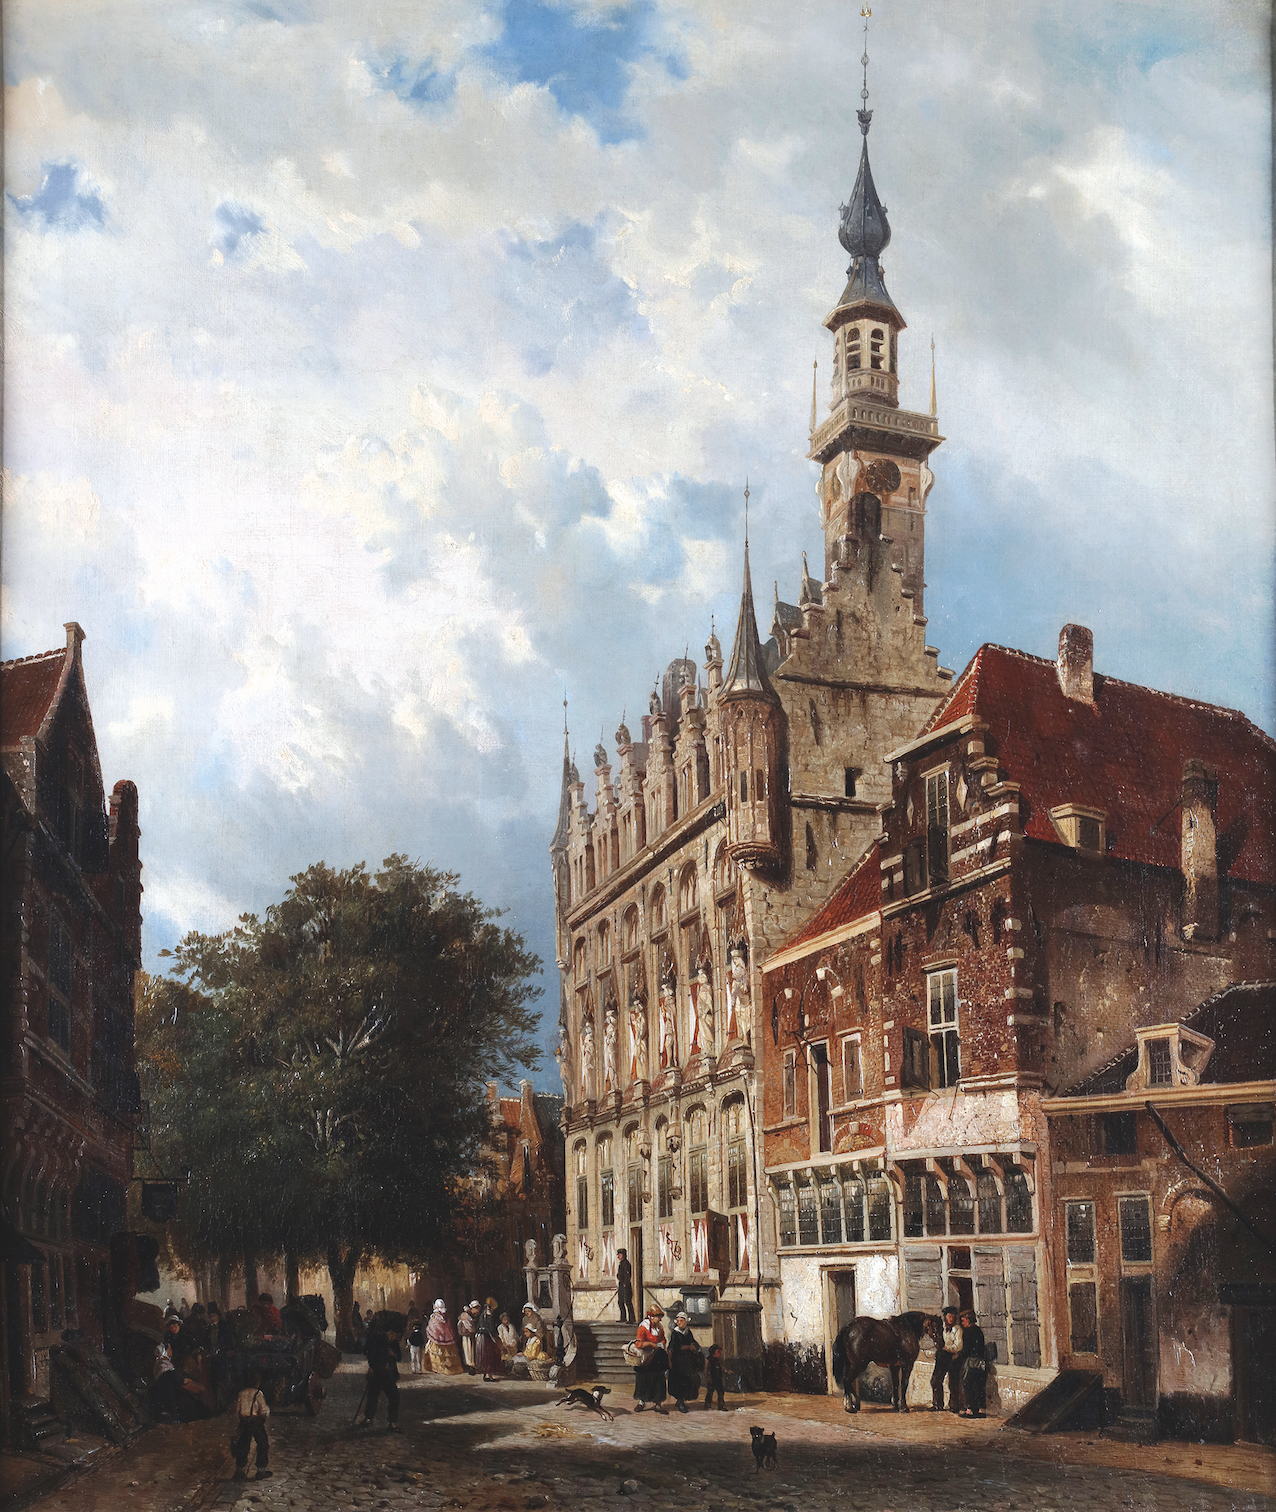 The town hall of Veere